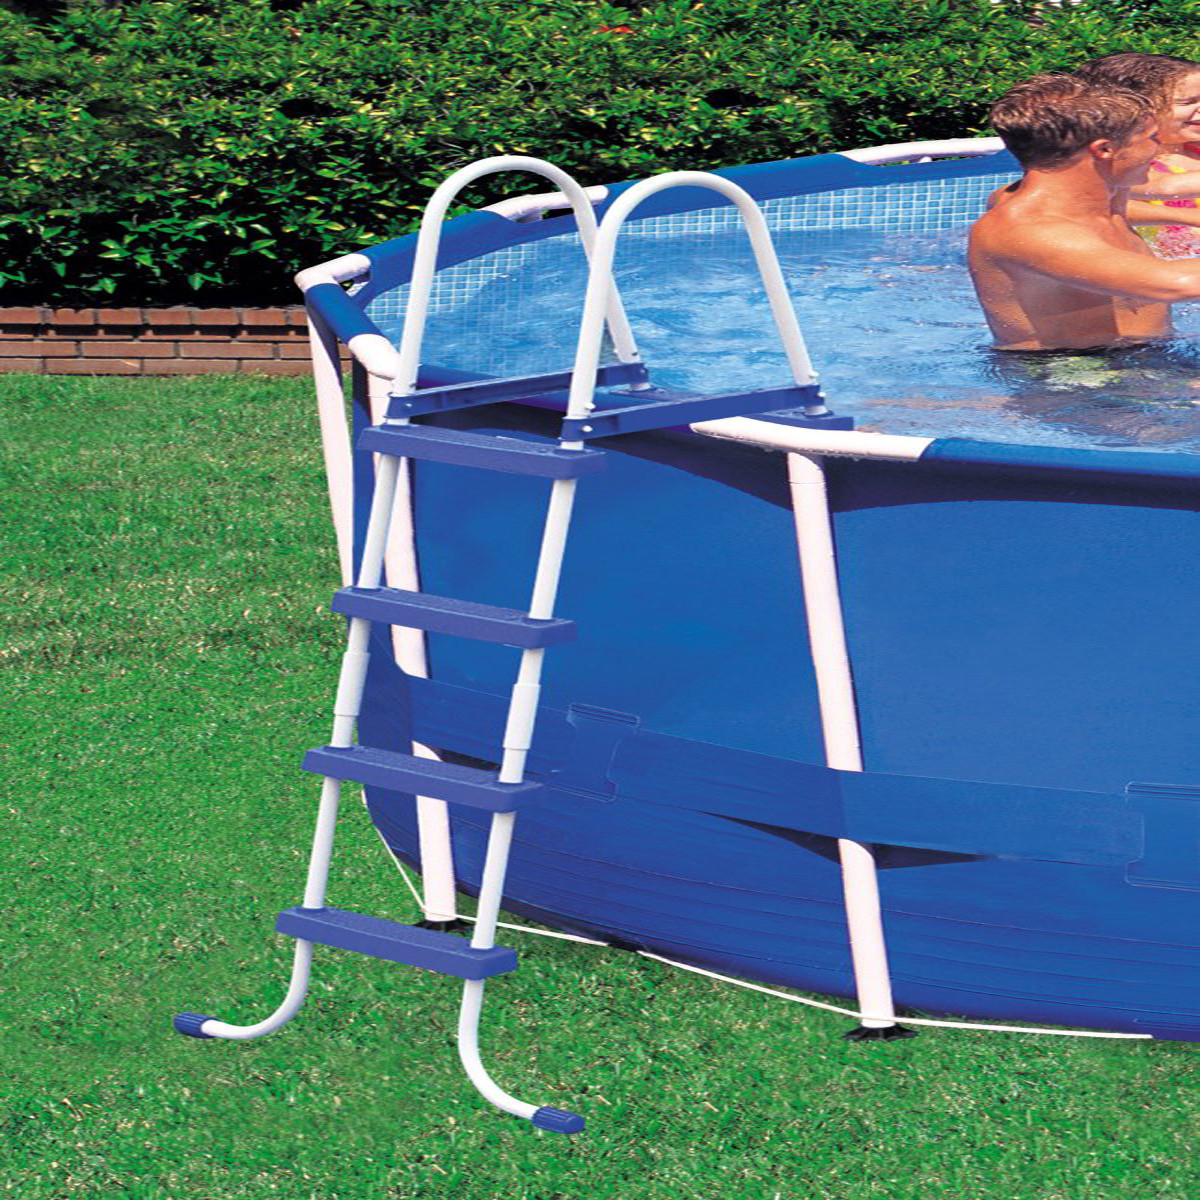 Best ideas about Above Ground Pool Ladders . Save or Pin Intex Ground Swimming Pool Ladder w Barrier 48 Now.